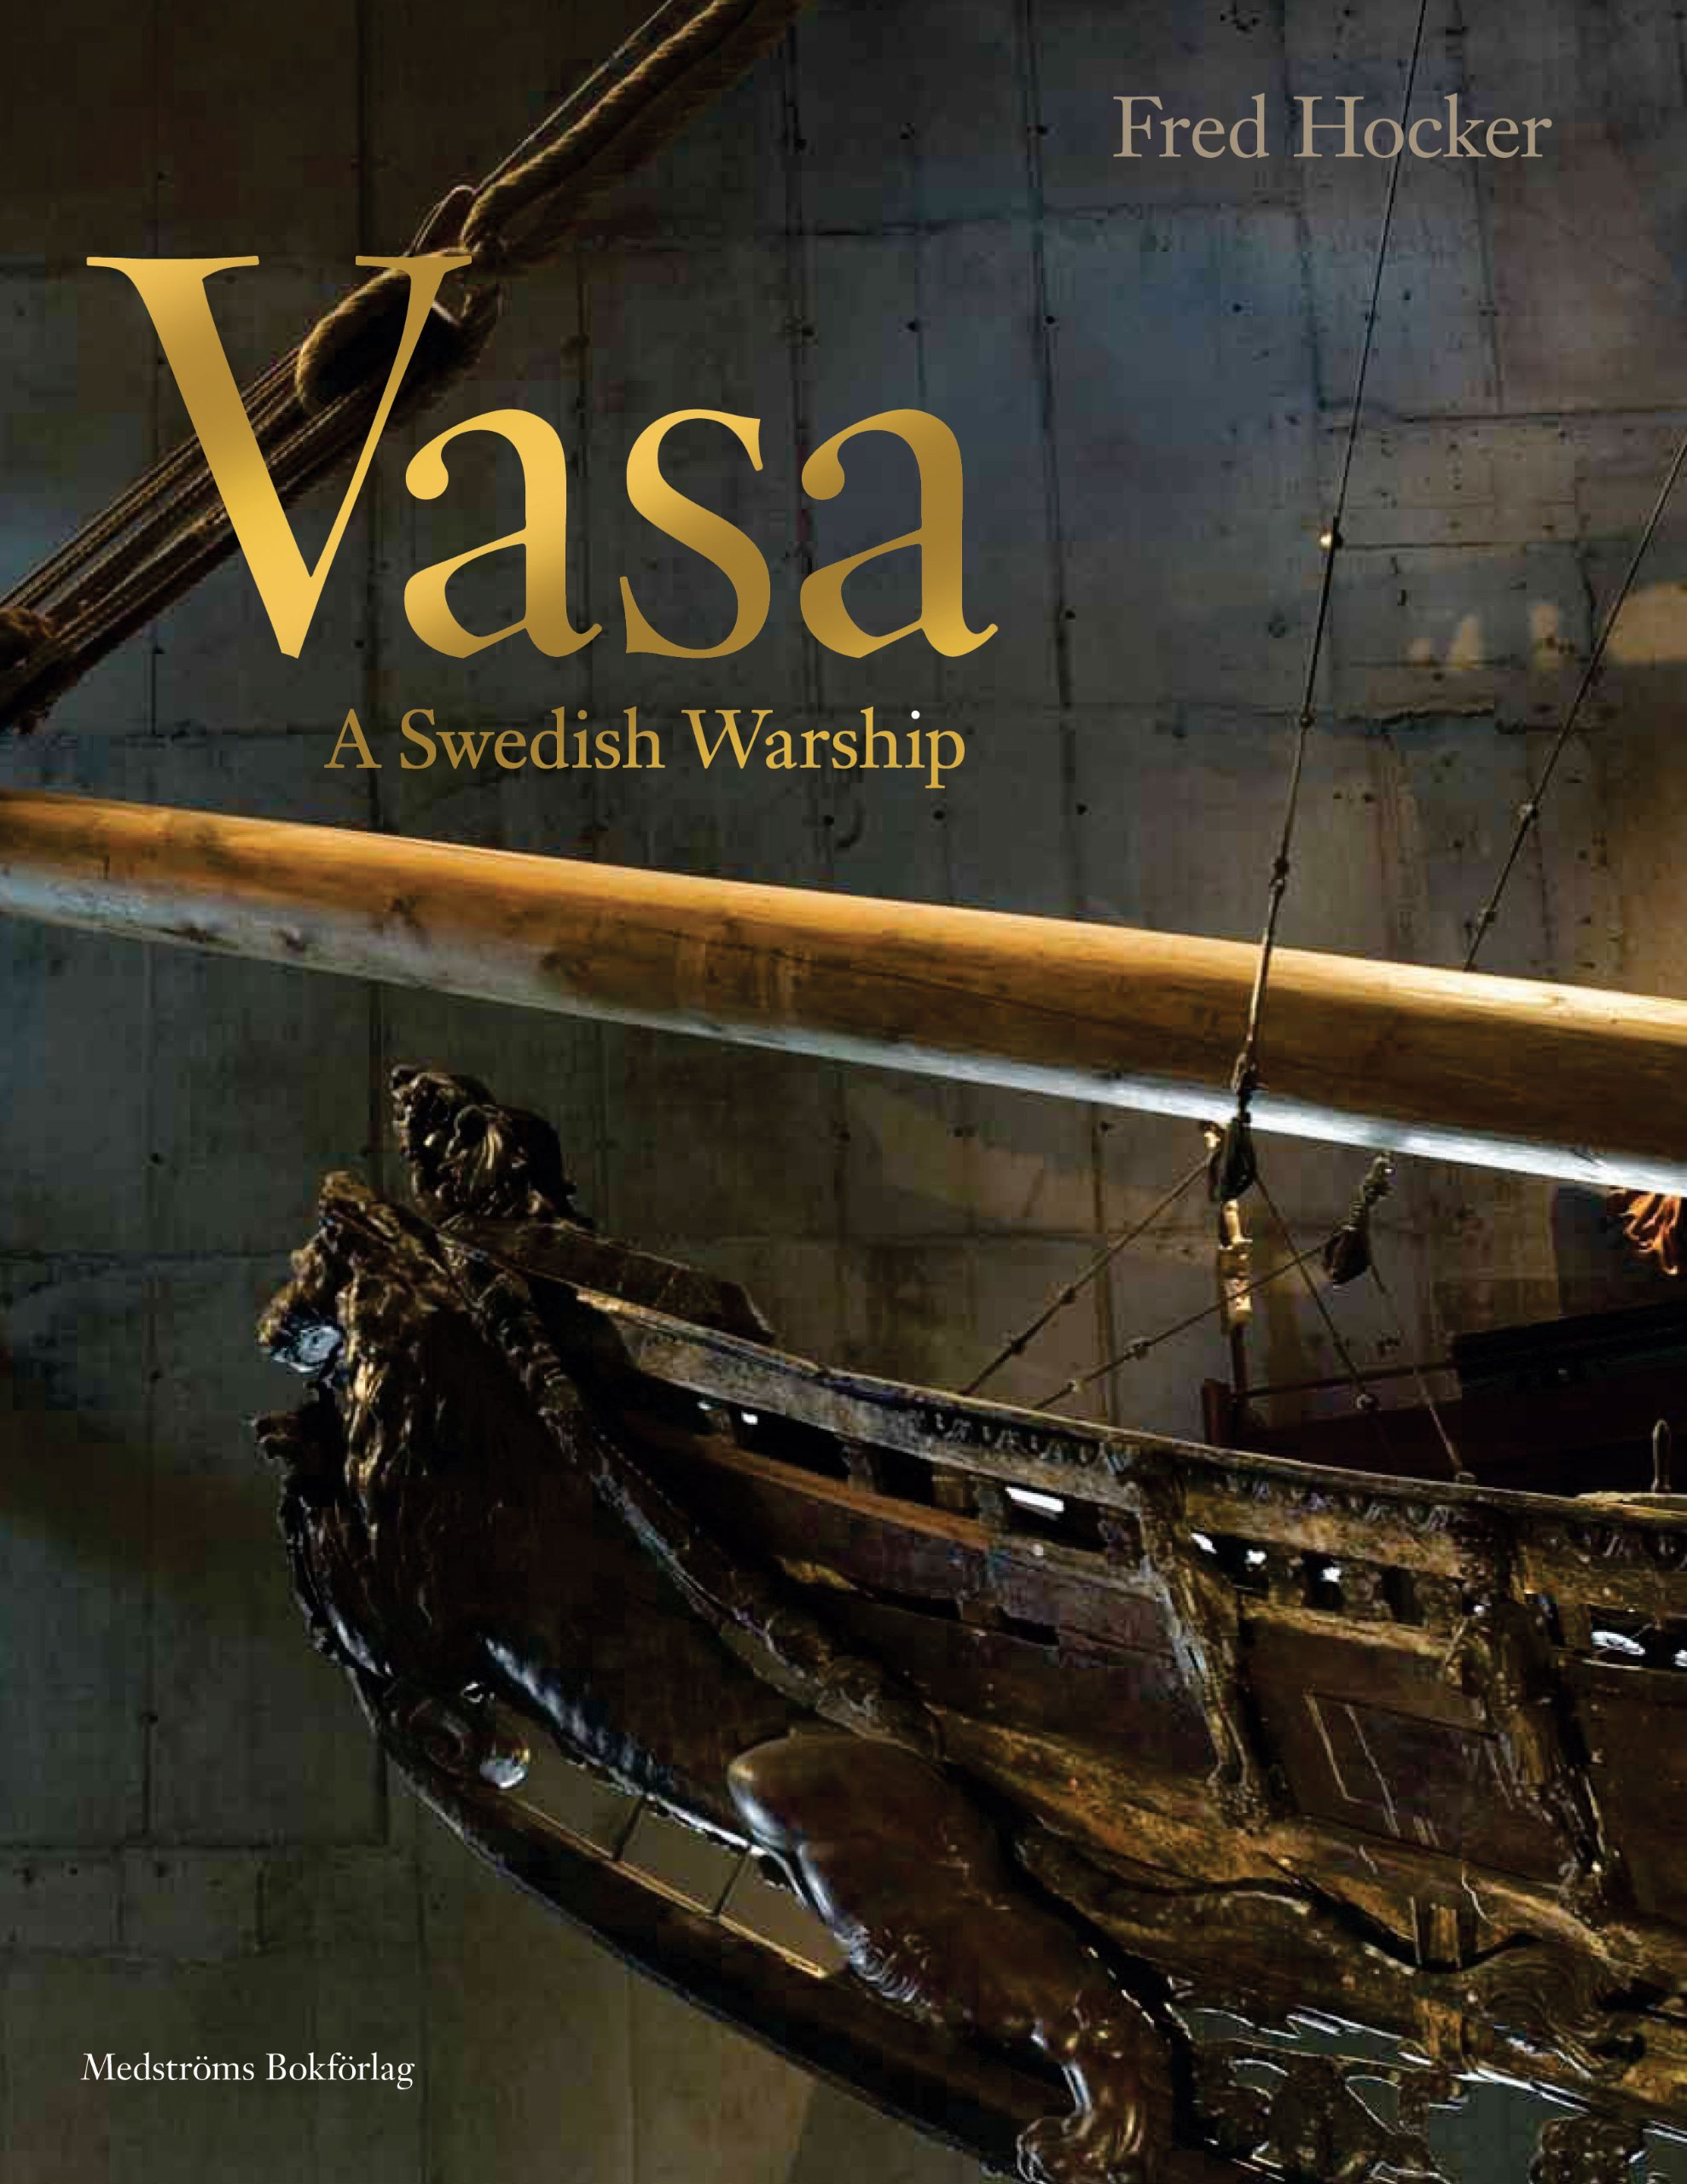 Vasa: Amazon.co.uk: Frederick M. Hocker: Books